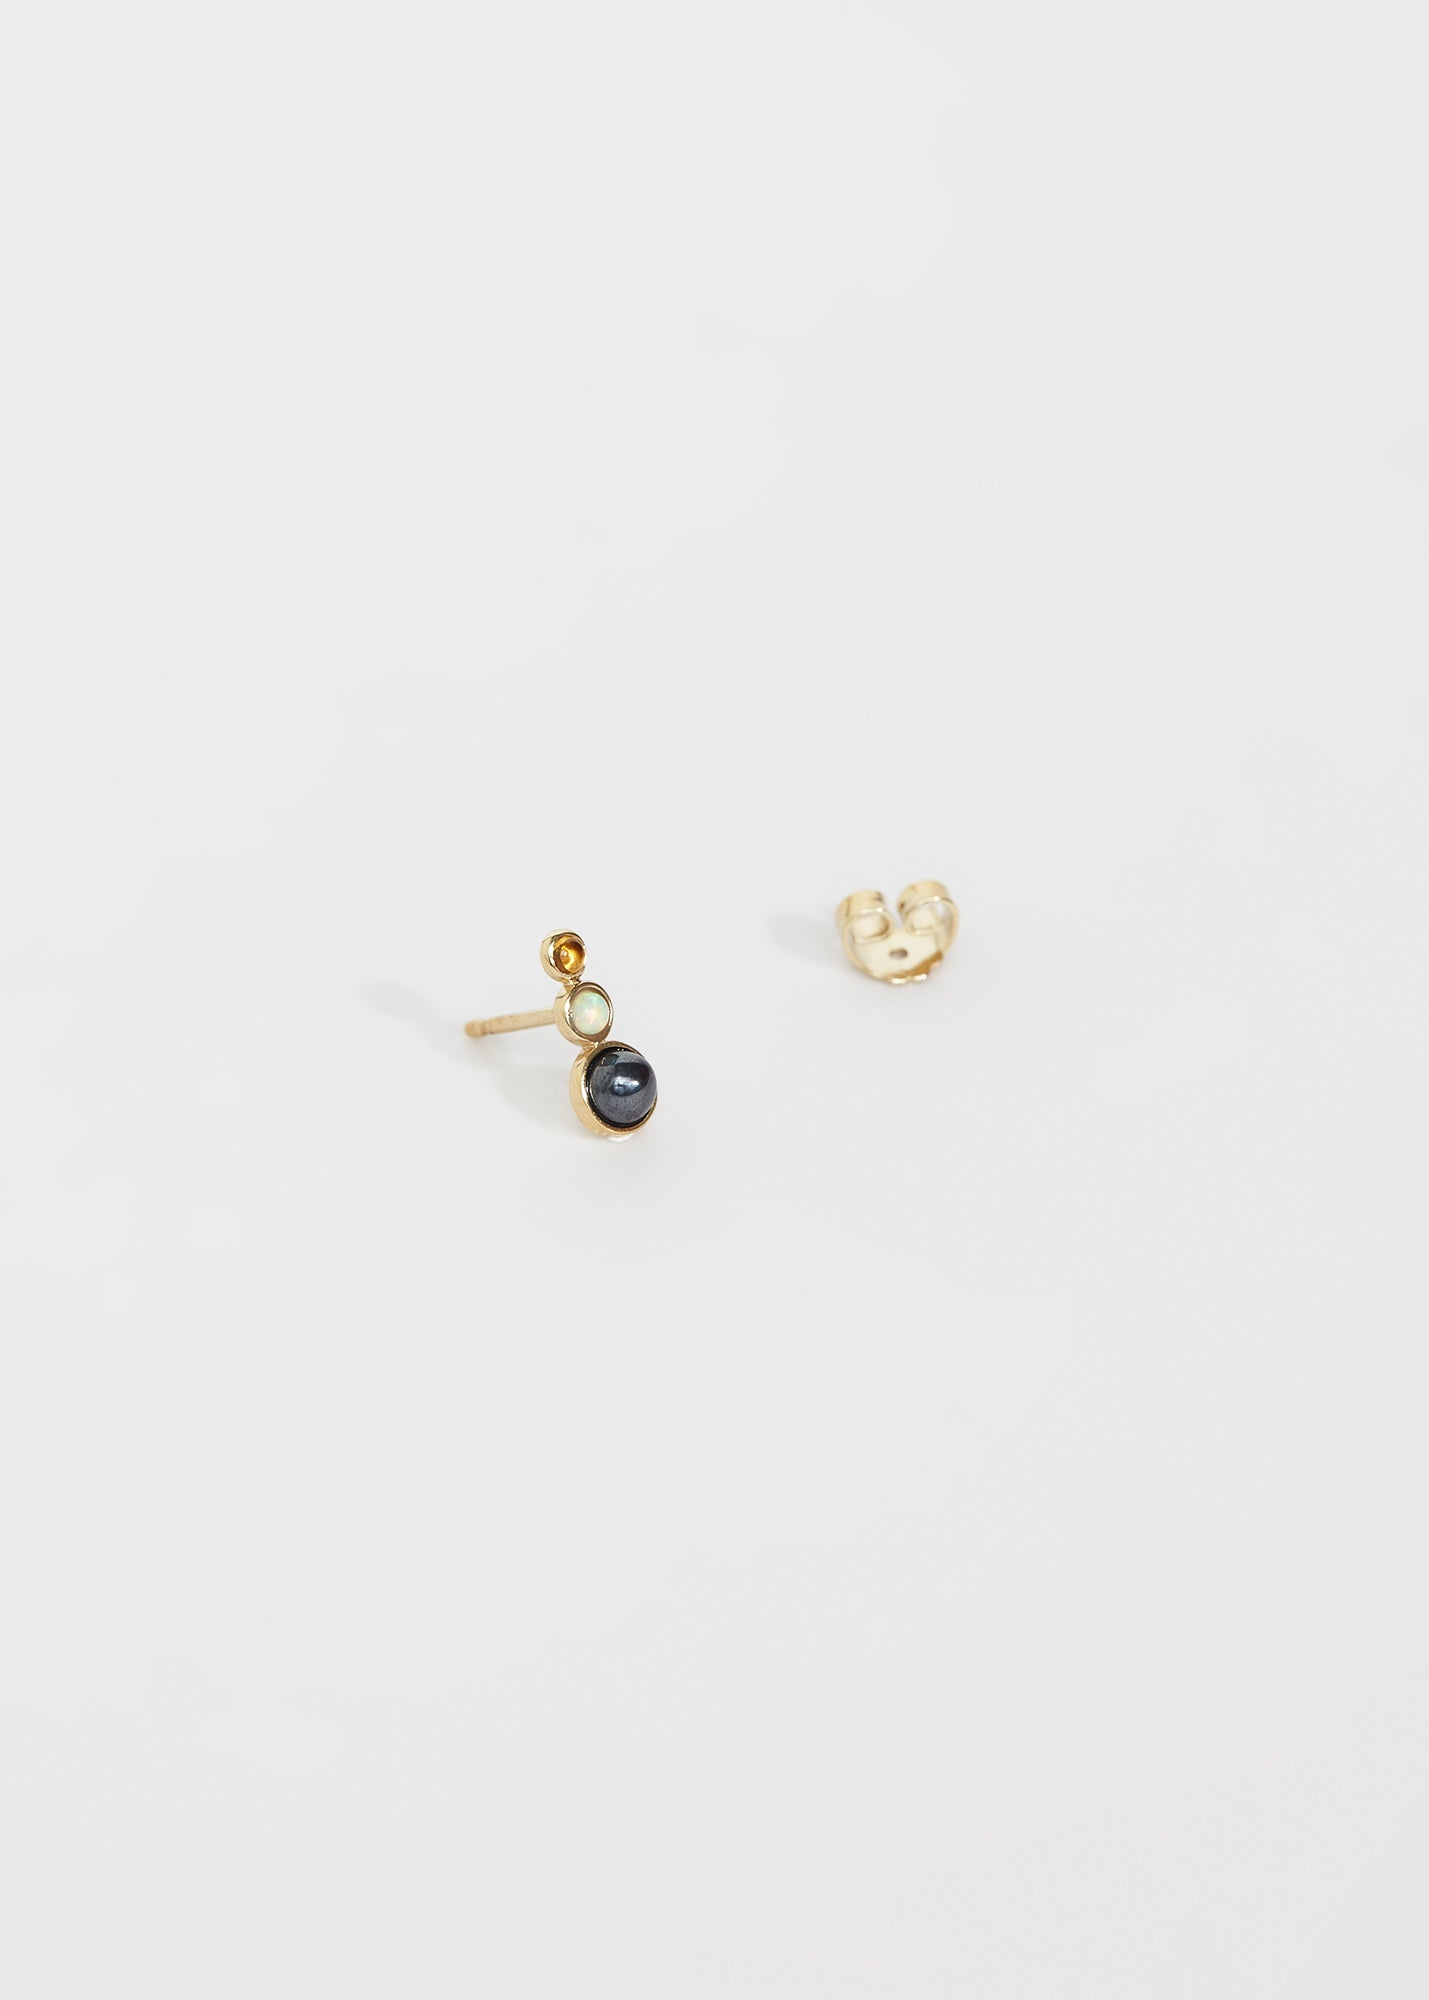 Triple Stud - Trine Tuxen Jewelry